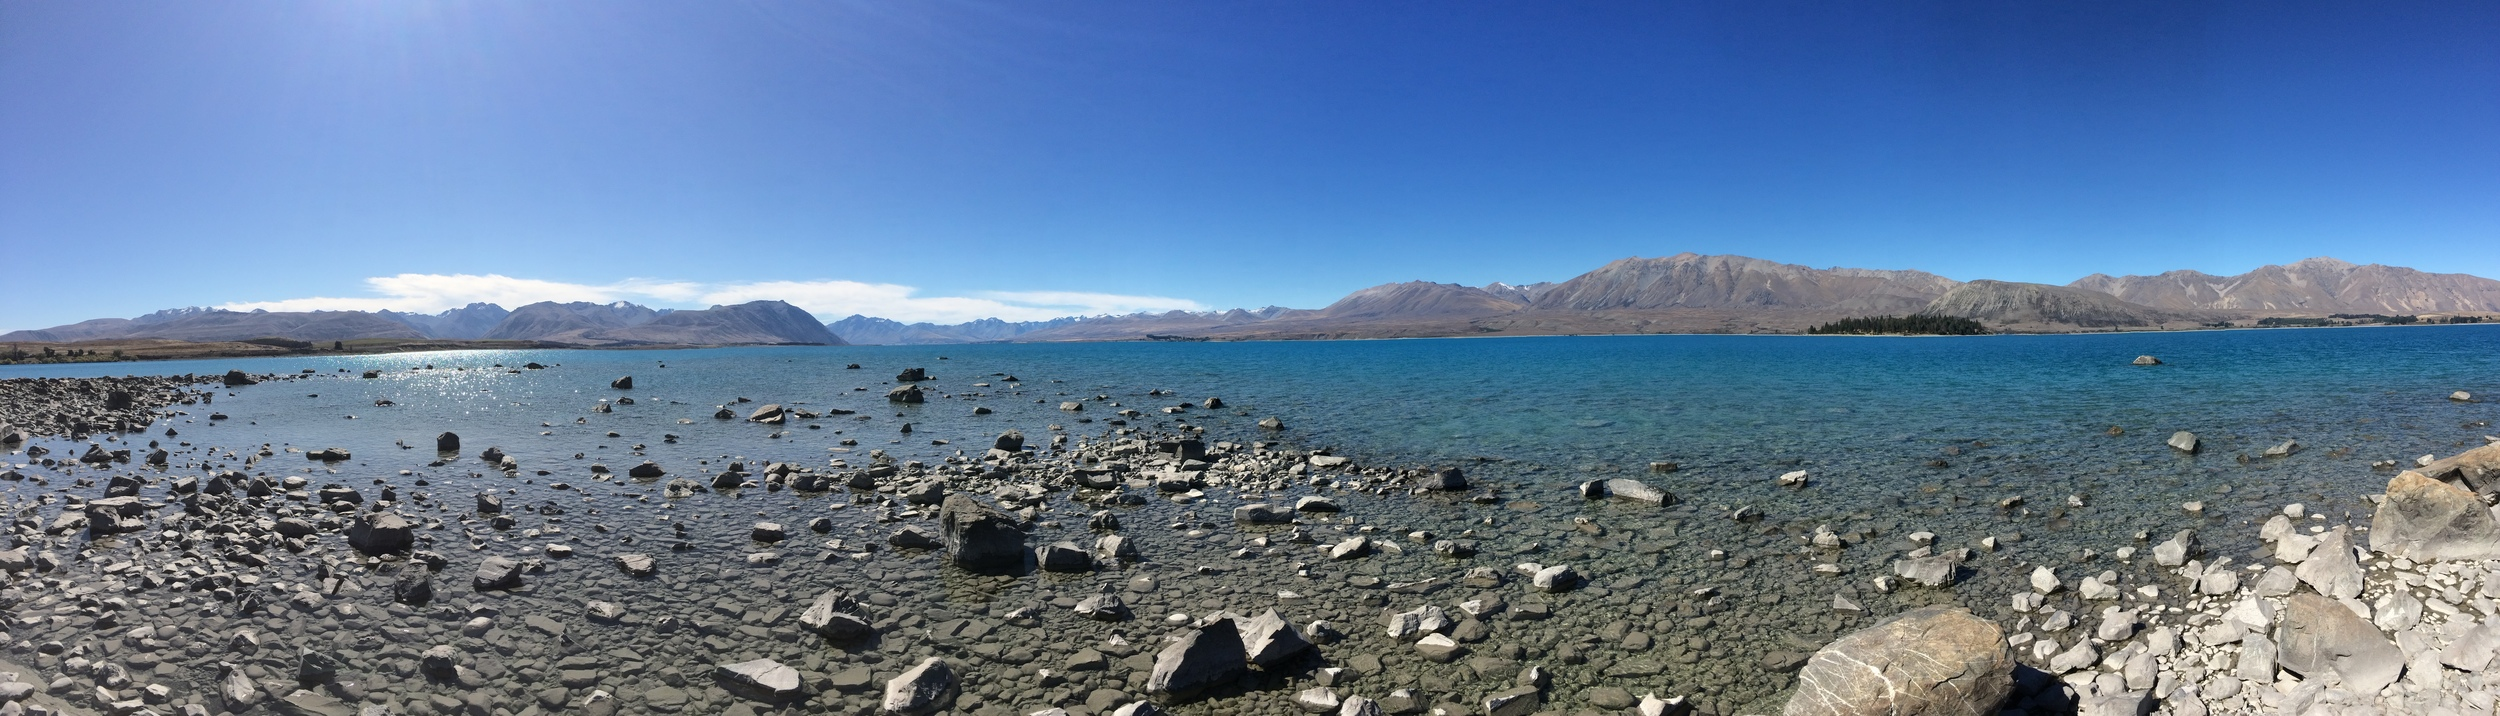 After two more rides I had made it to my first destination - Lake Tekapo